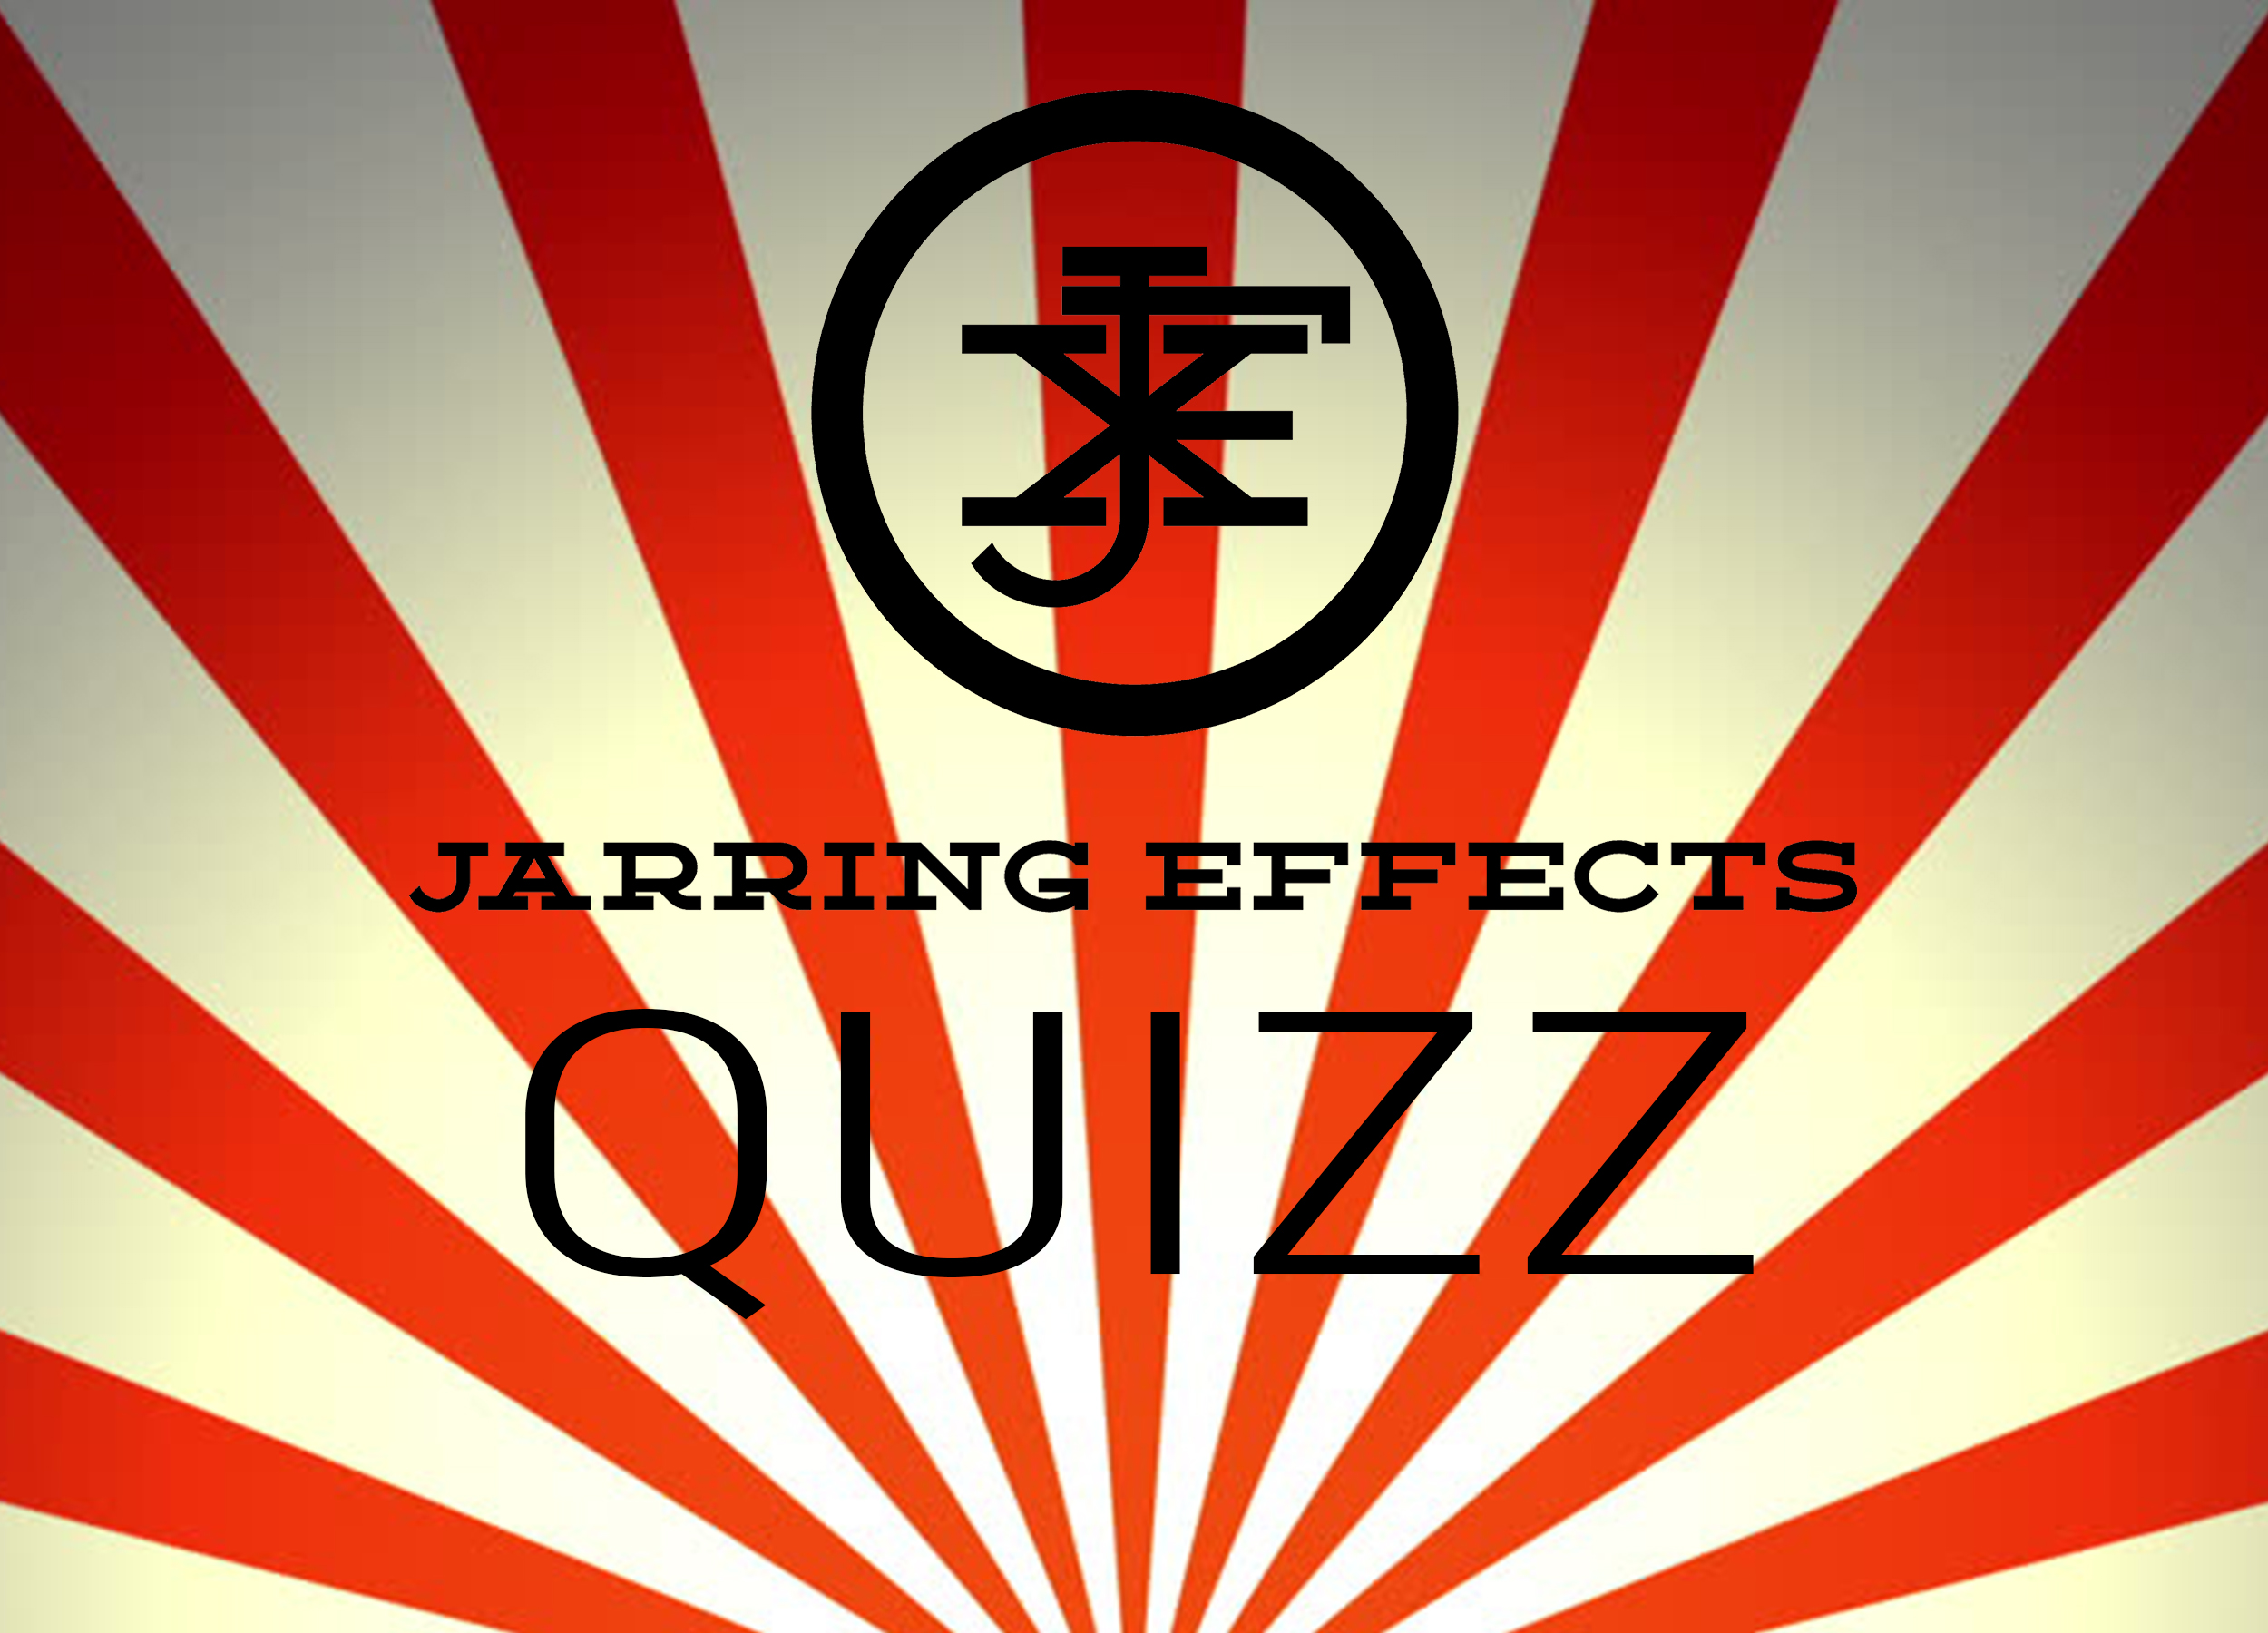 Quizz Jarring Effects